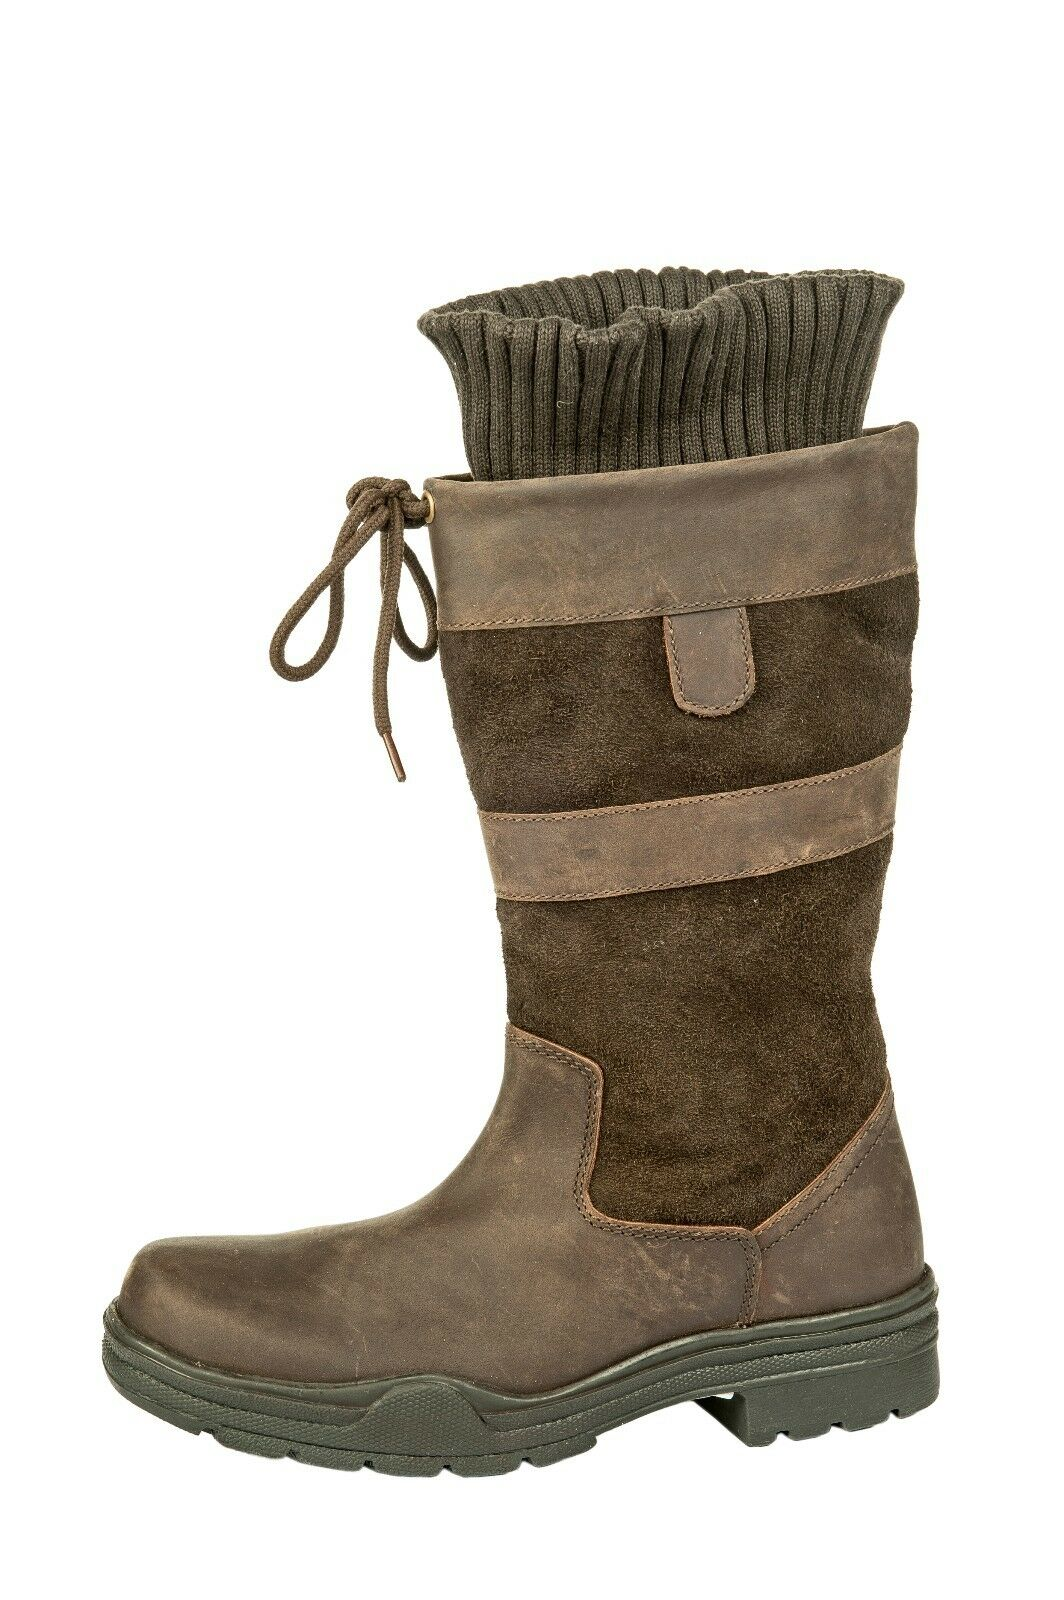 HKM Unisex Fashion 3 4 Belmond Country Spring Riding Yard Boot Sizes 3-10 4689